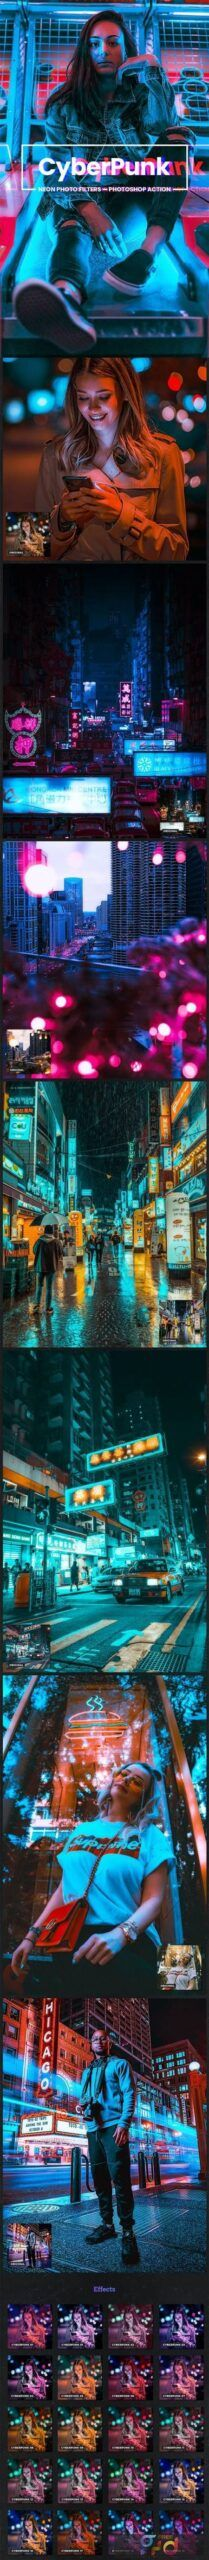 CyberPunk Neon Photo Filters Photoshop Action 26775858 ...